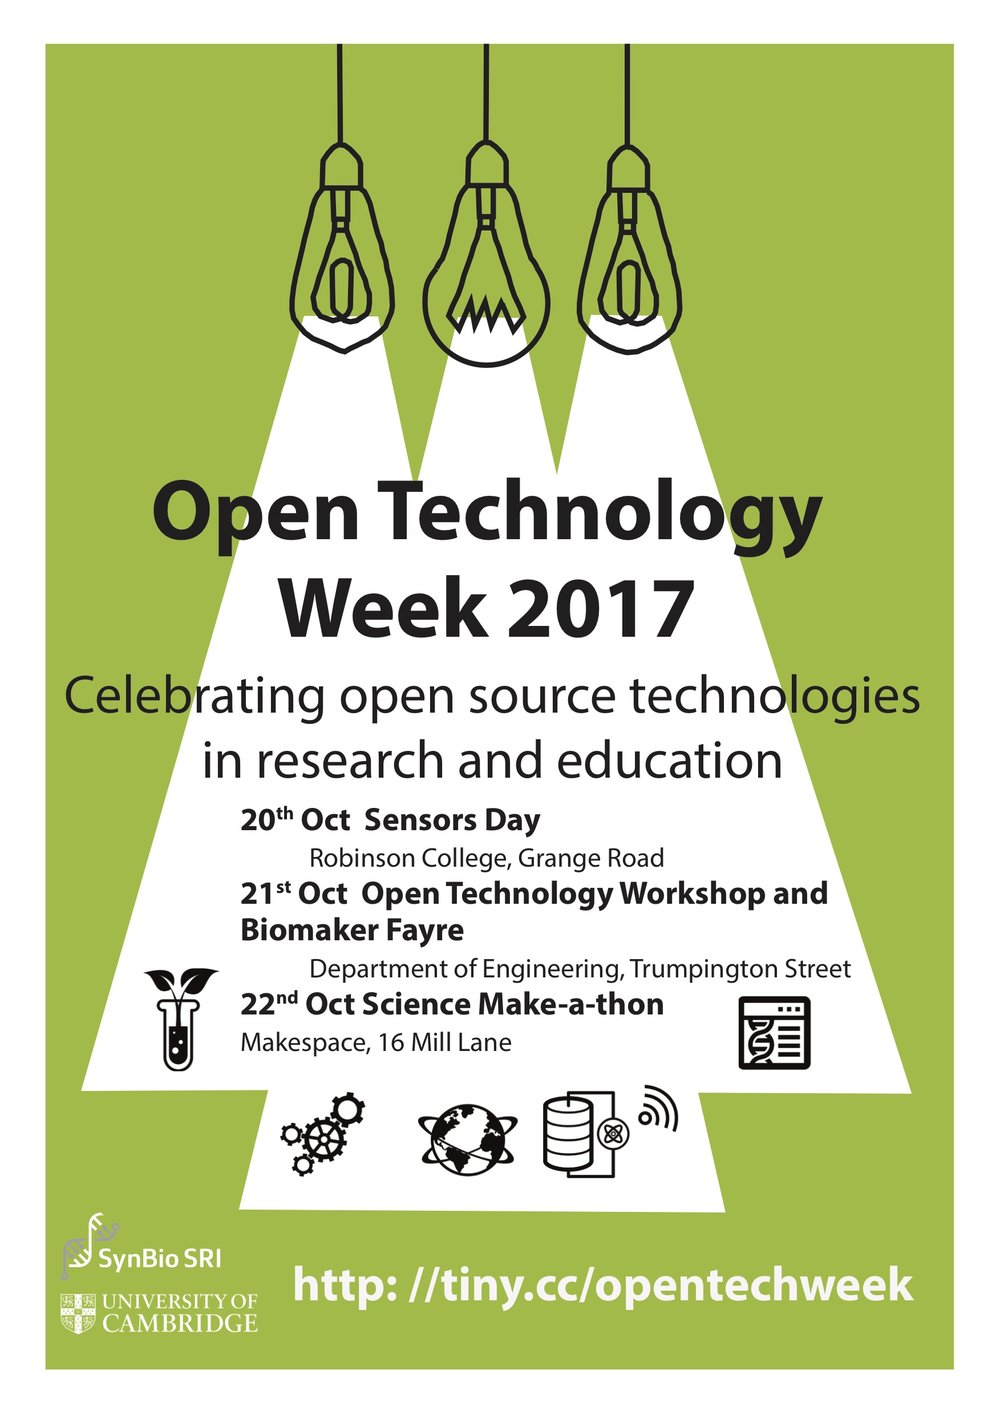 Open Technology Week 2017 Poster_3.jpg